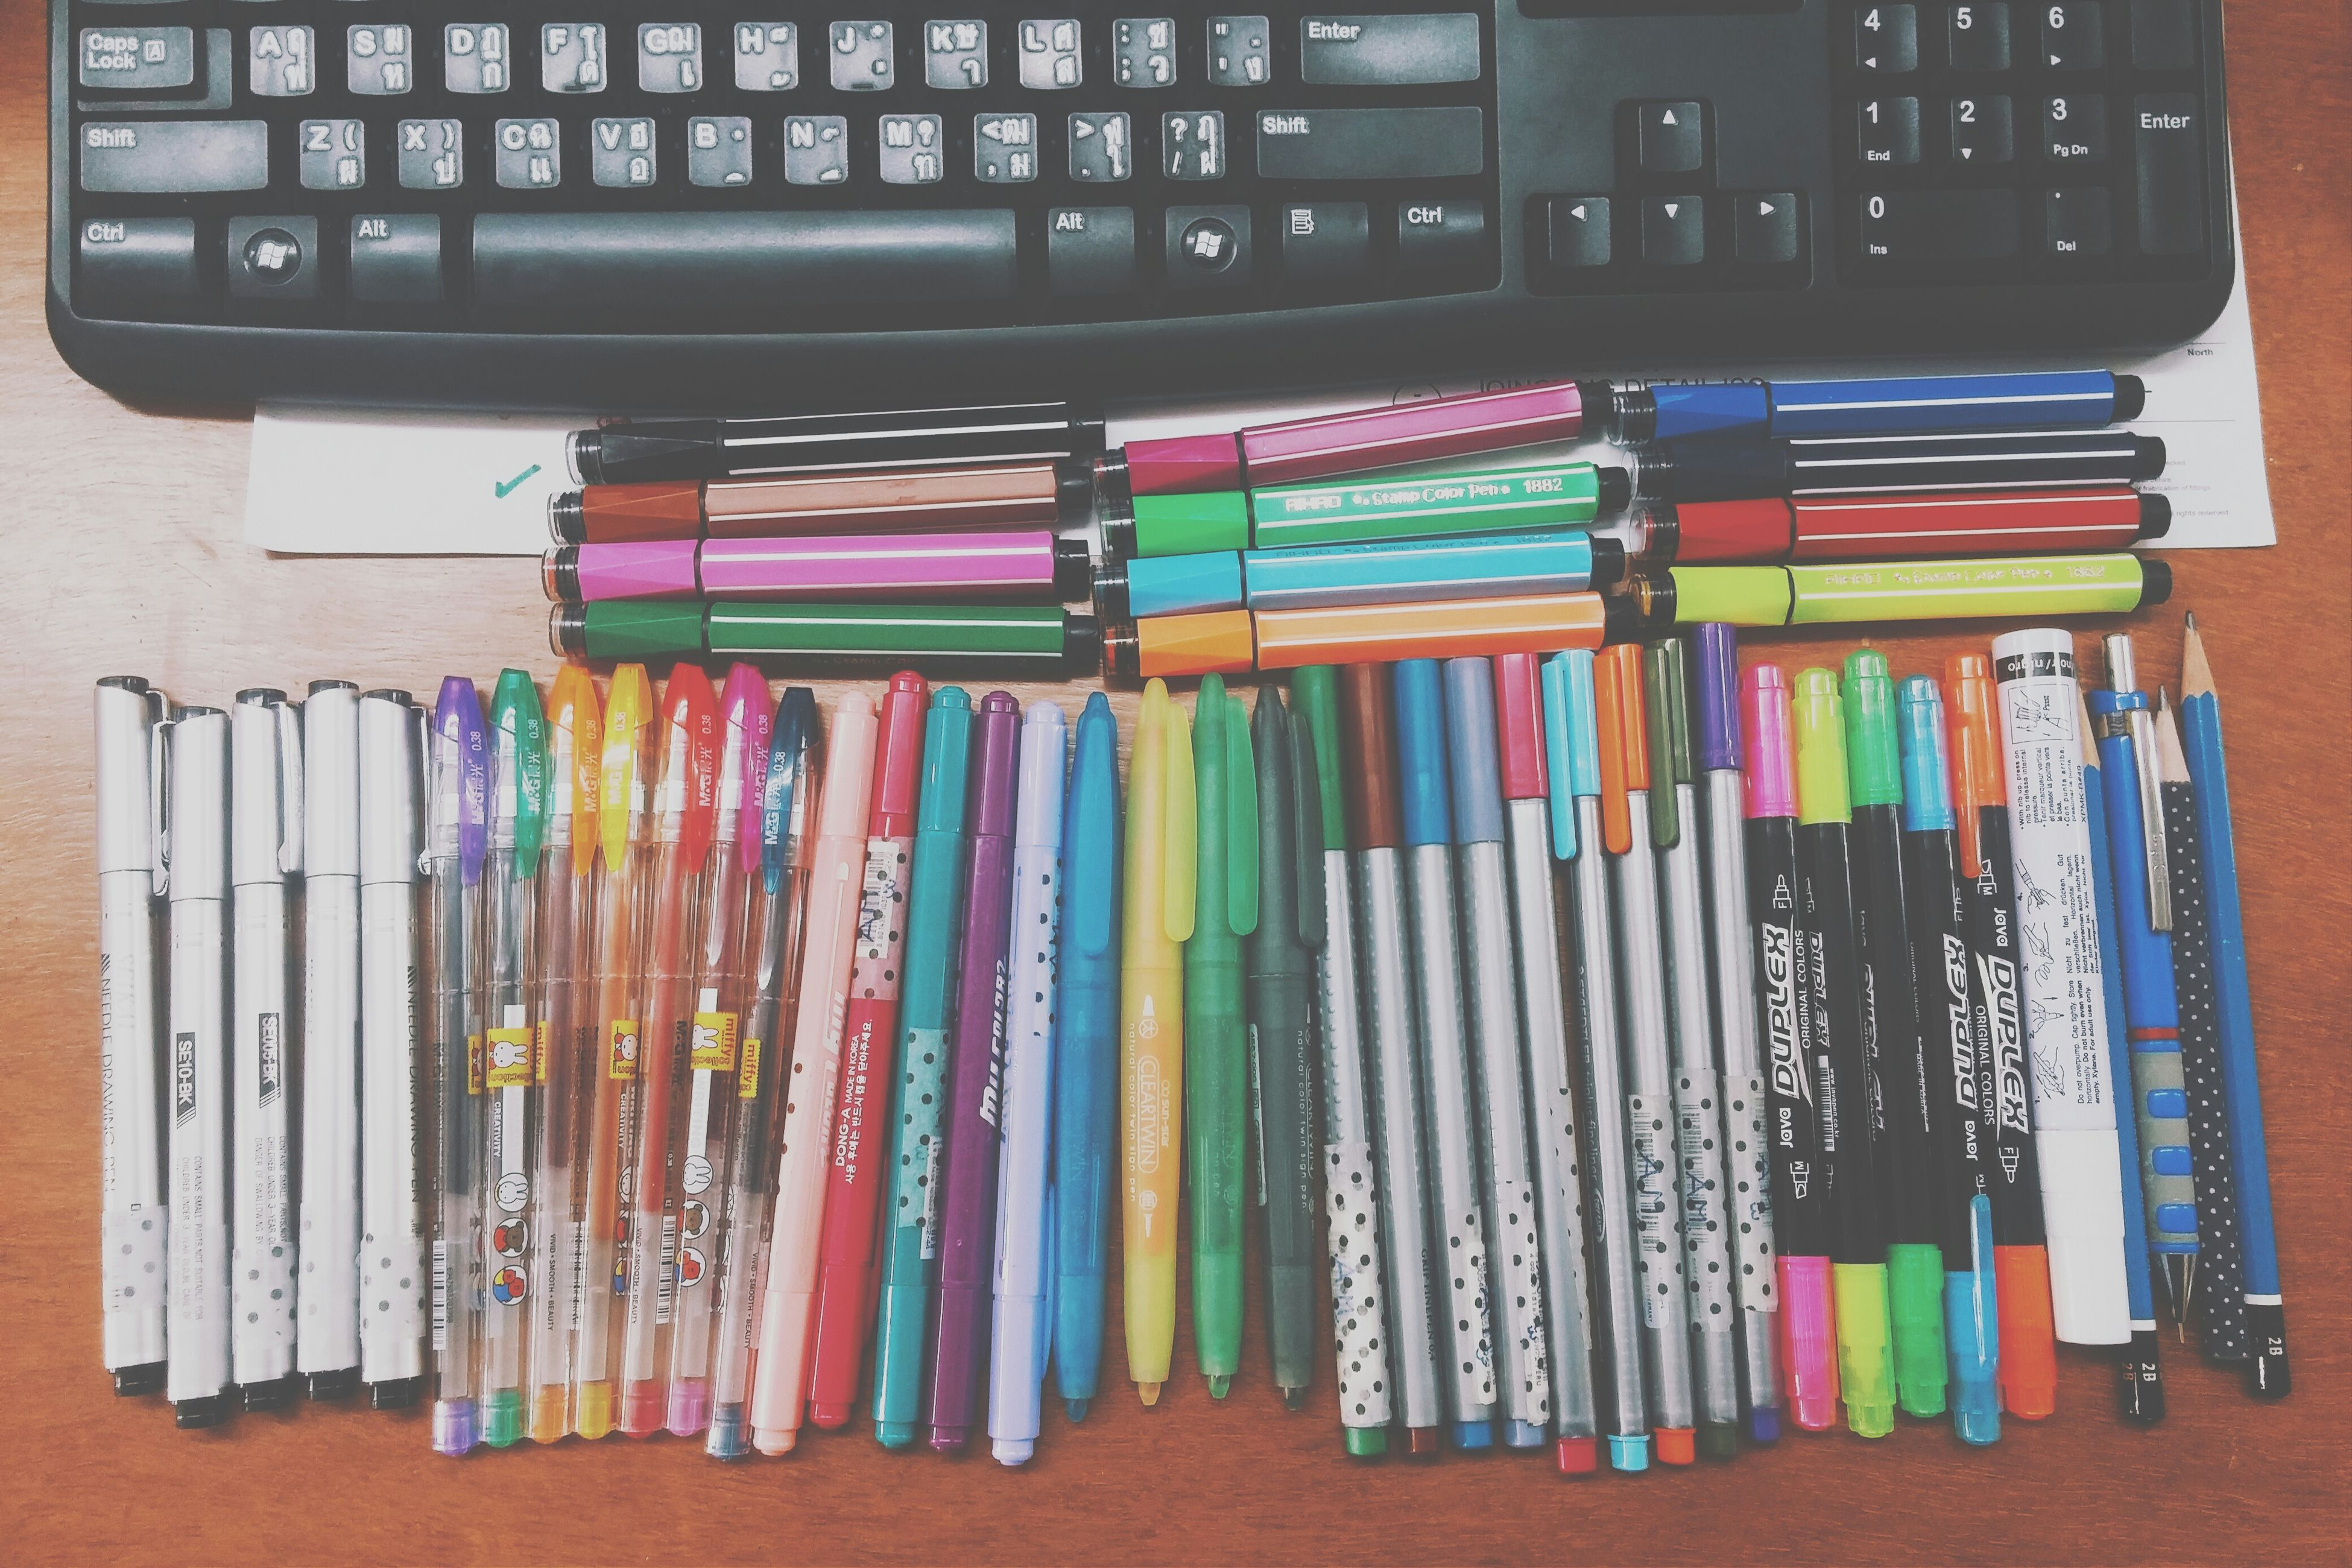 variation, large group of objects, indoors, multi colored, choice, arrangement, still life, education, order, in a row, abundance, collection, book, shelf, side by side, stack, literature, colorful, pencil, table